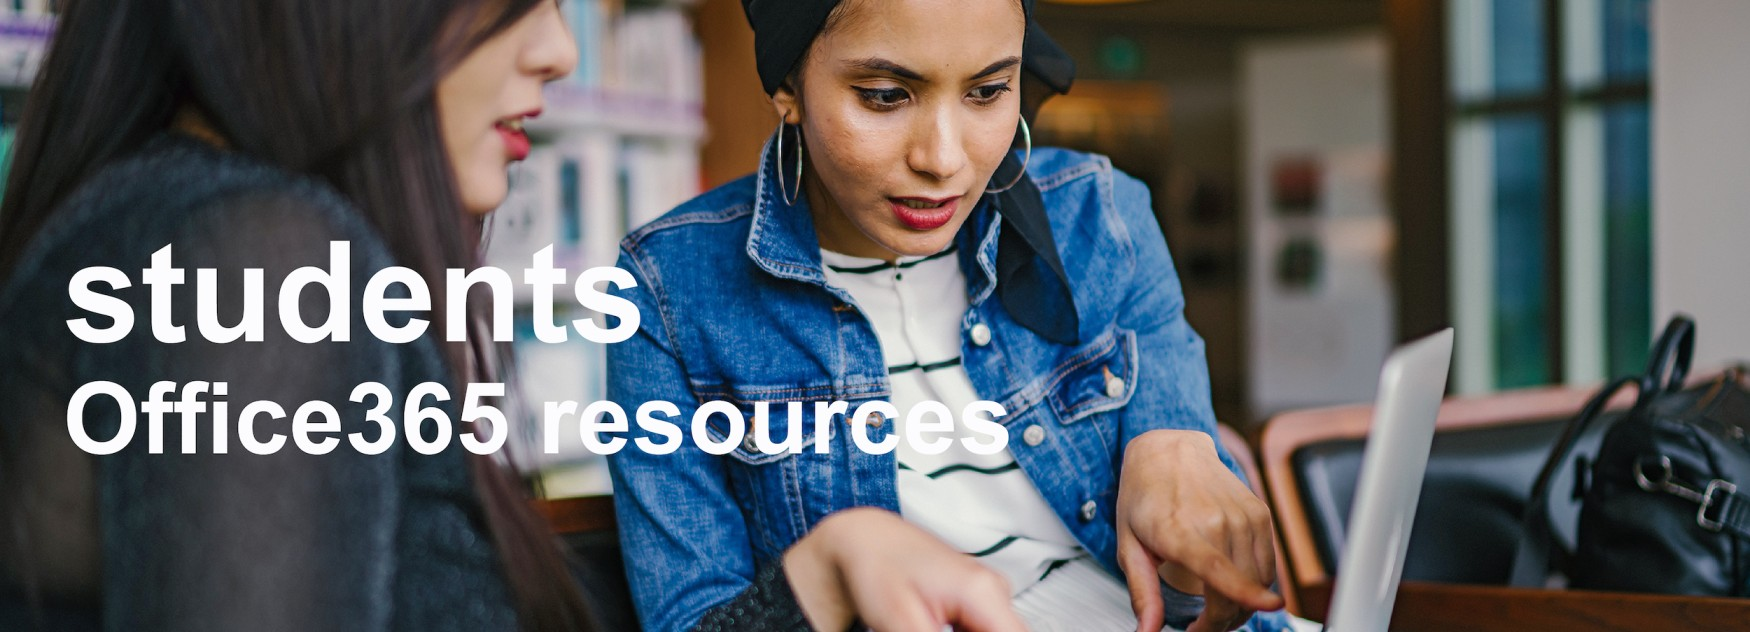 Cover Image Student Office 365 Resources